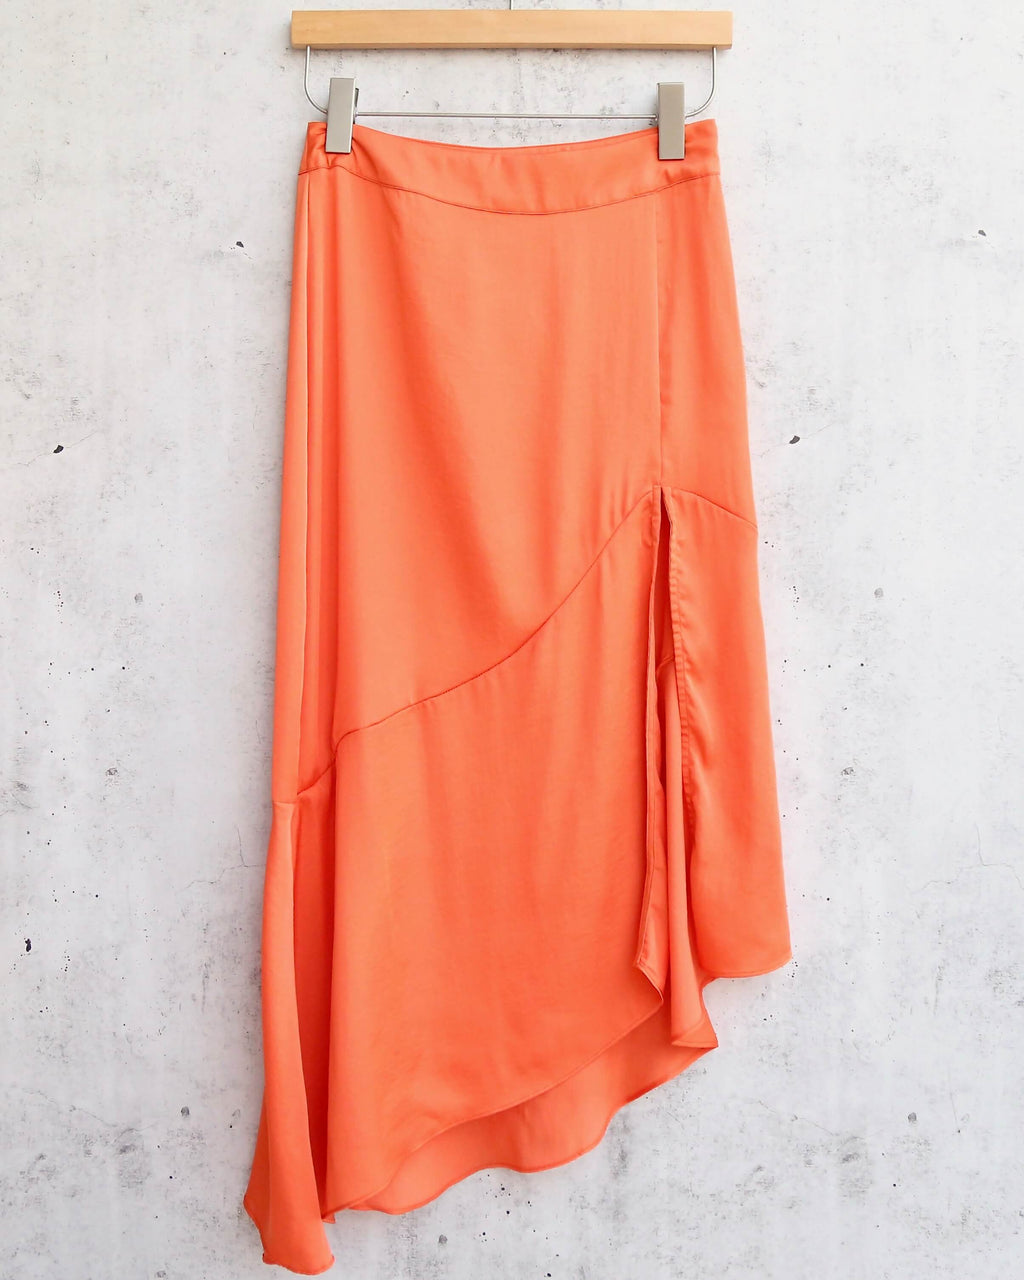 Free People - Lola Split Skirt - Bright Orange